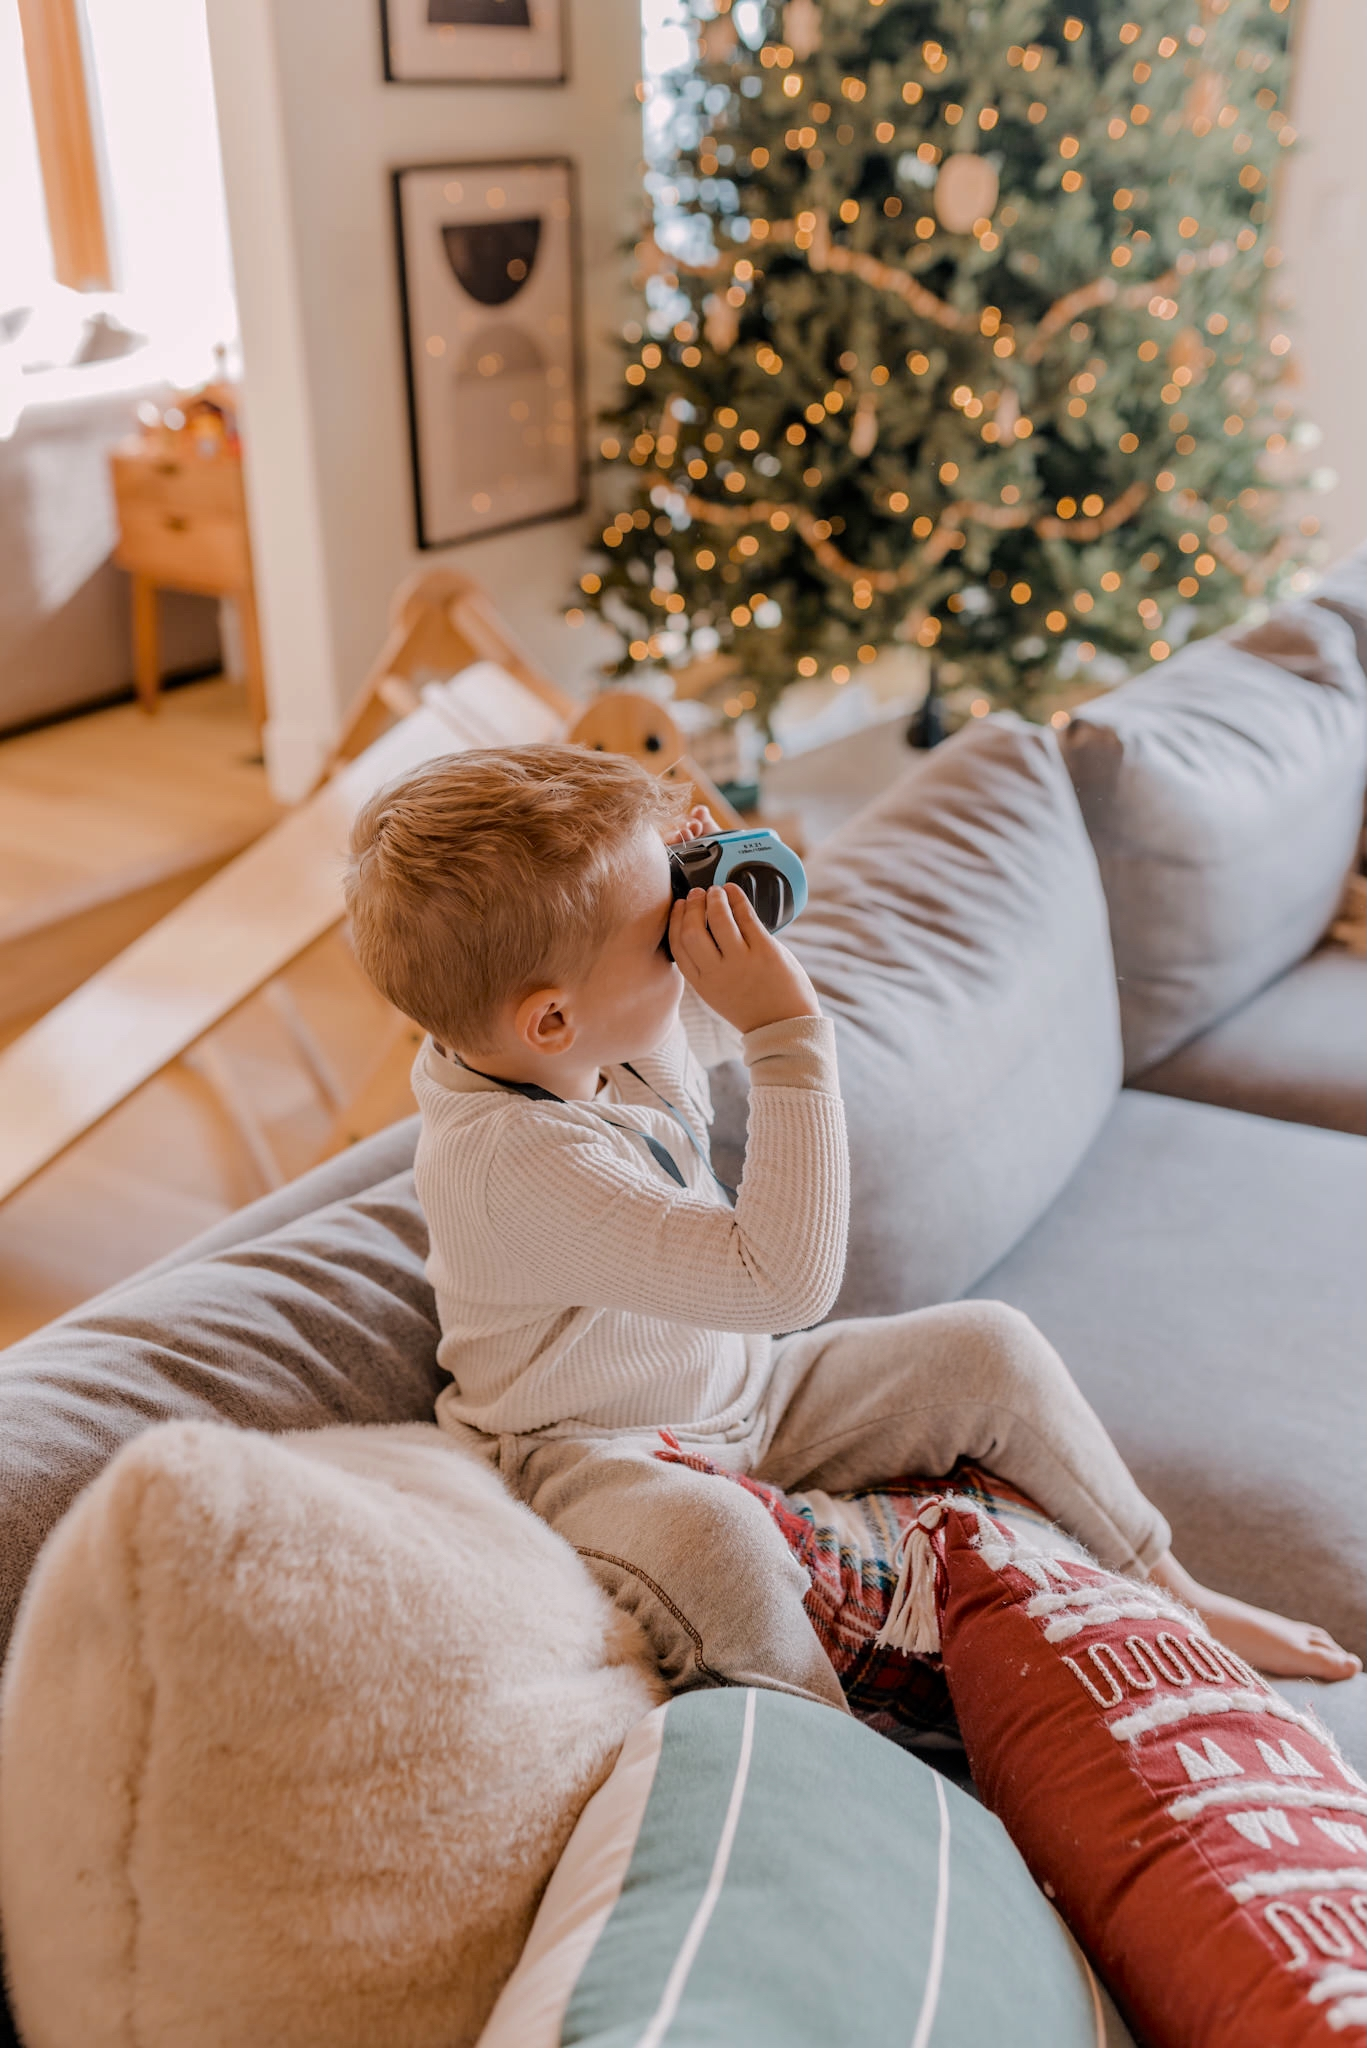 24 PRESCHOOLER GIFTS YOUR 3 TO 5 YEAR OLDS WILL LOVE featured by top San Diego lifestyle blogger, Navy Grace |Preschooler Gifts by popular San Diego lifestyle blog, Navy Grace: image of a young boy looking through binoculars.